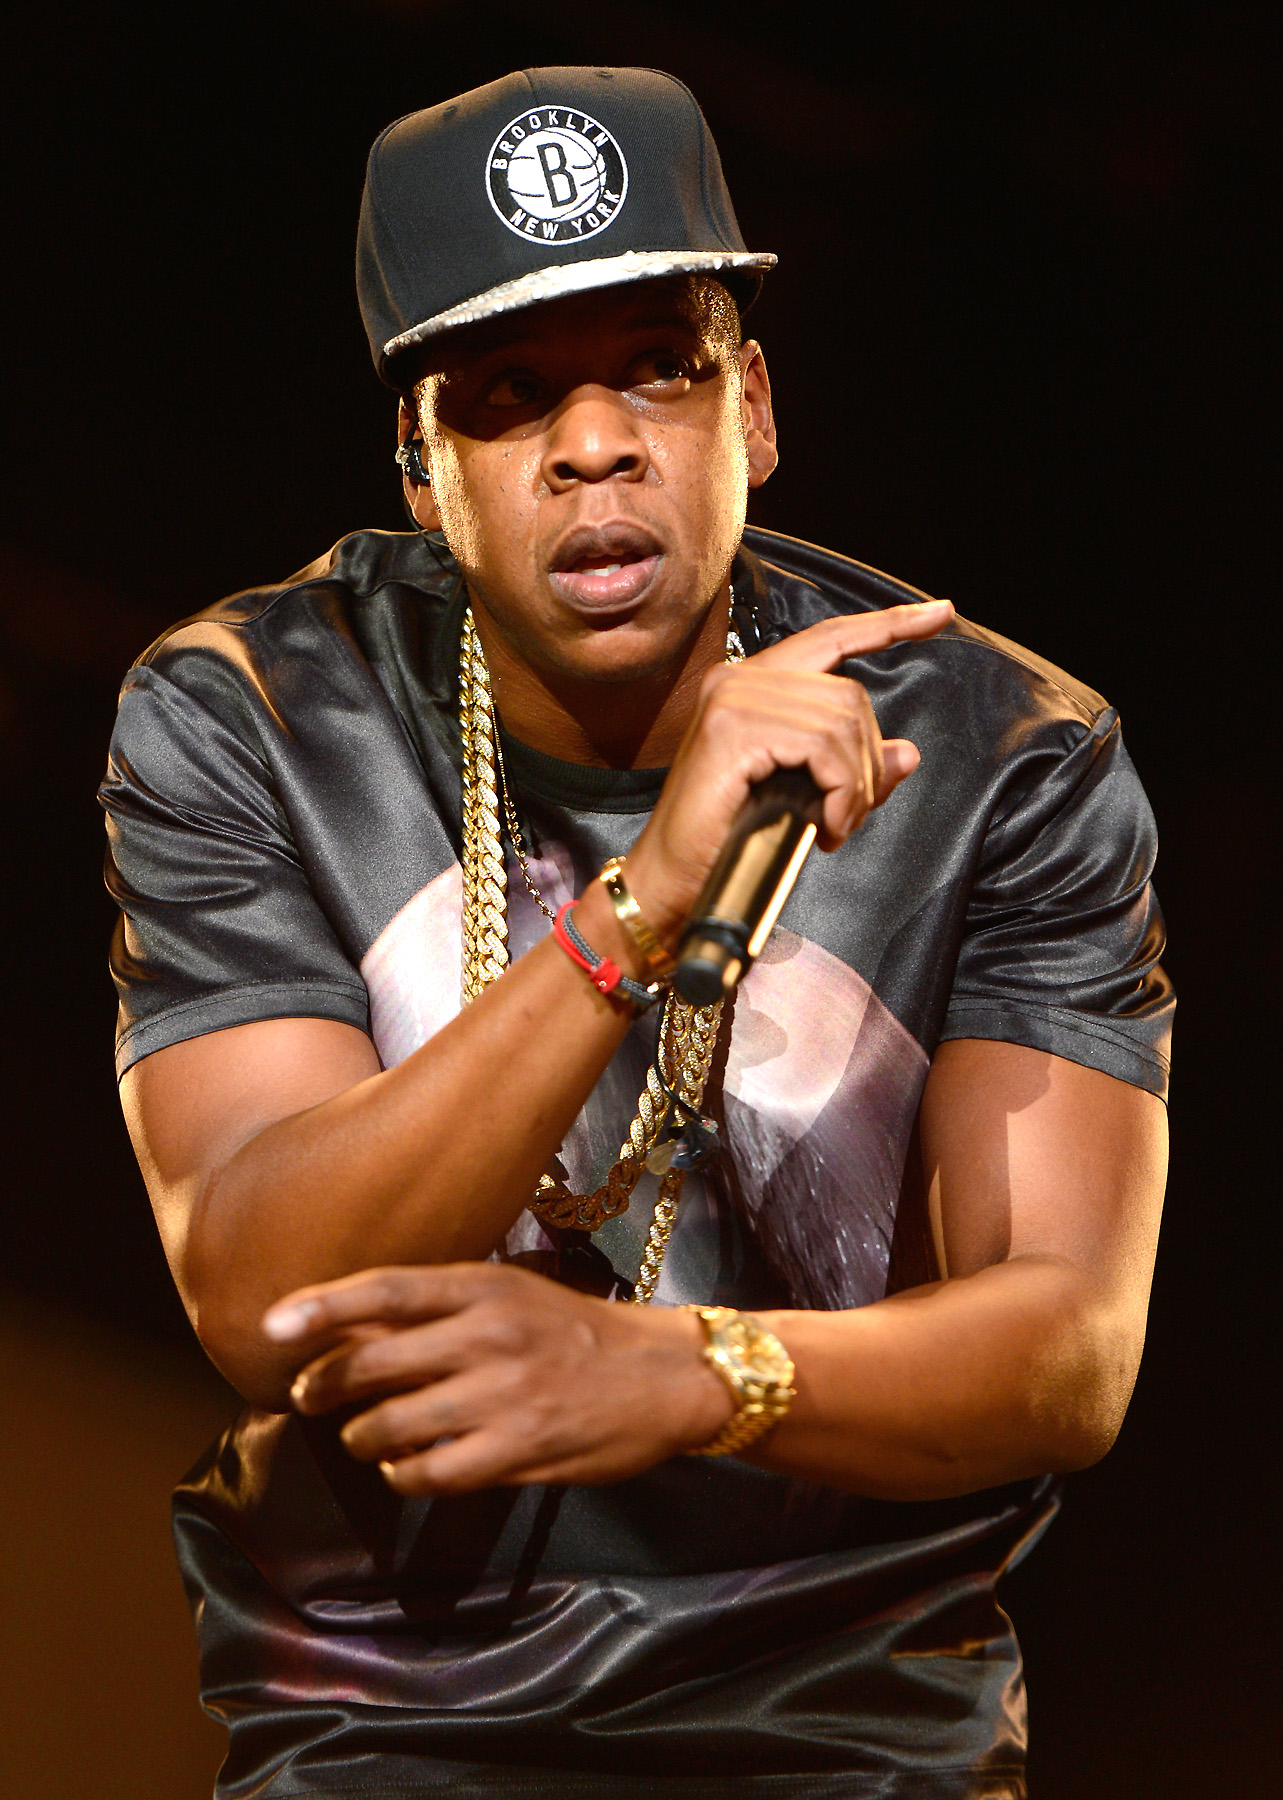 Heres why 444 is not jay zs 13th album kuulpeeps ghana heres why 444 is not jay zs 13th album kuulpeeps ghana campus news and lifestyle site by students malvernweather Choice Image